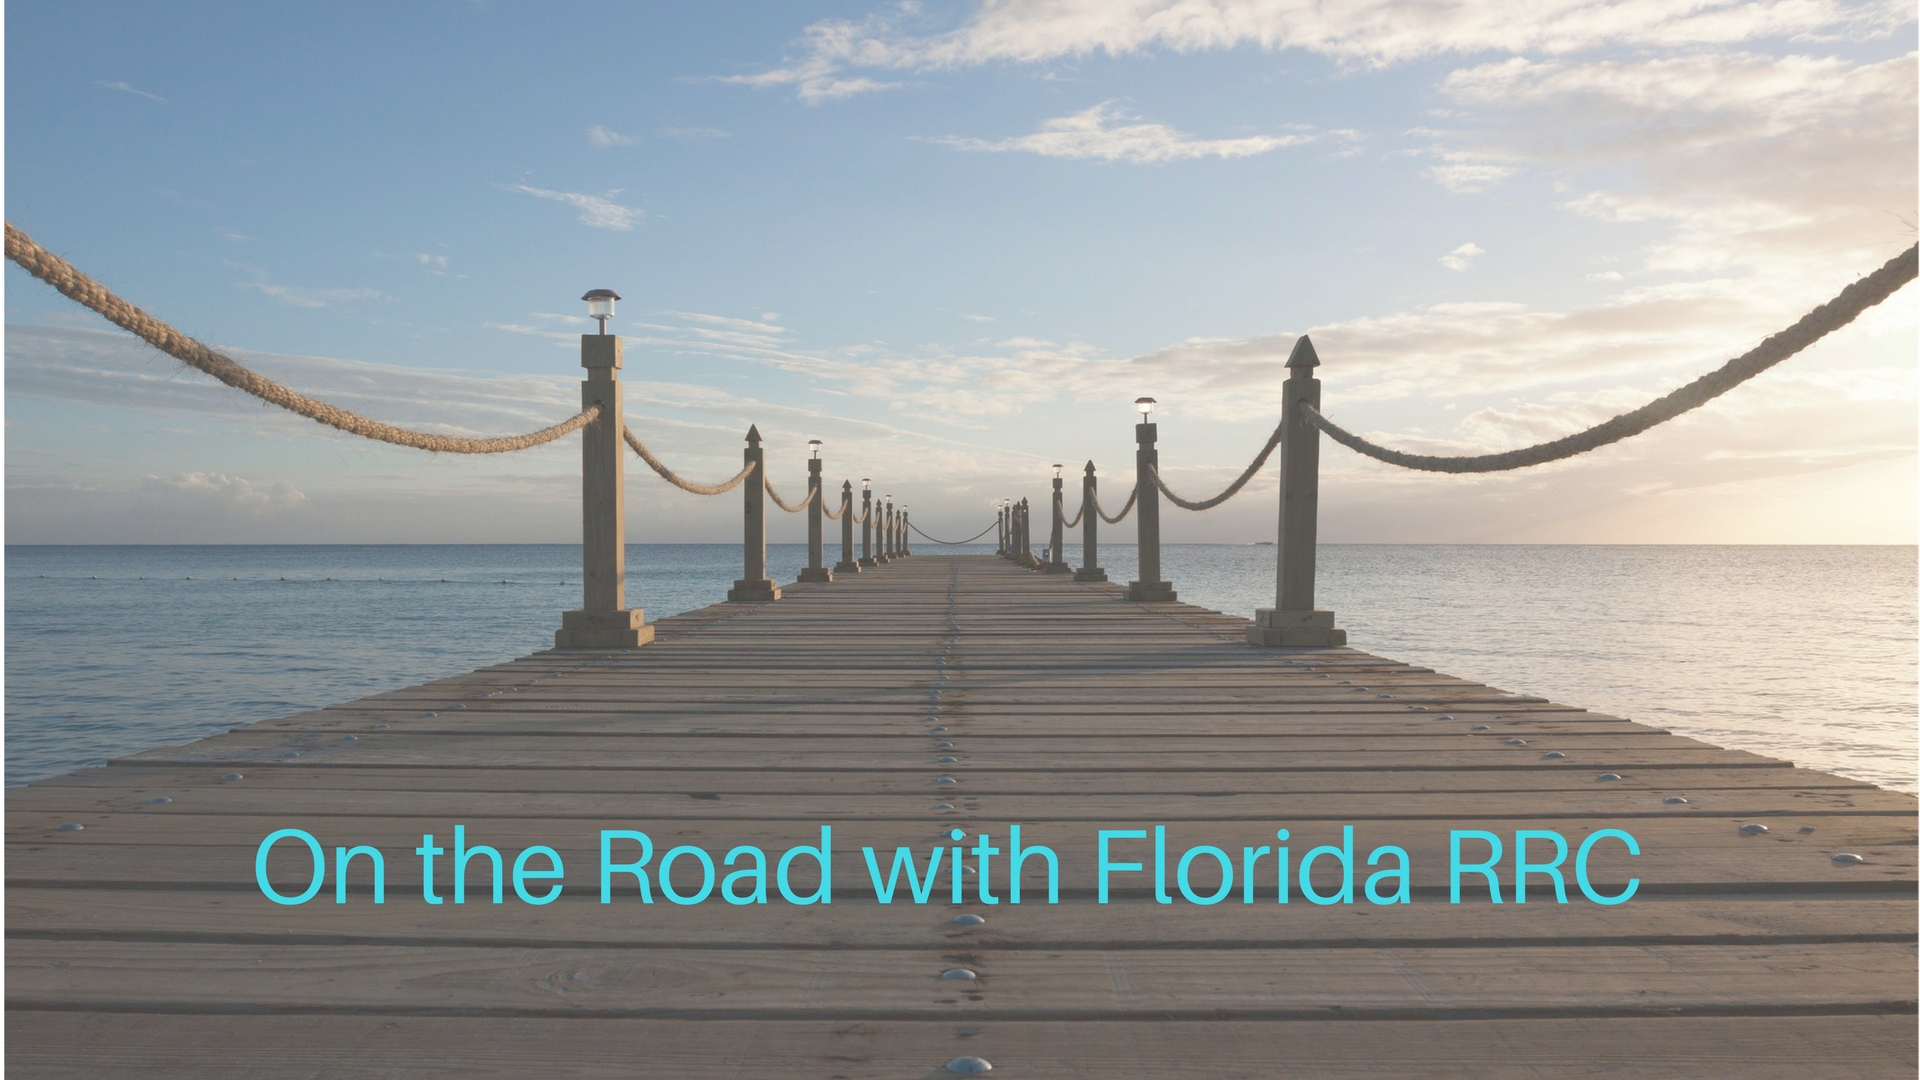 On the Road with Florida RRC Banner 2